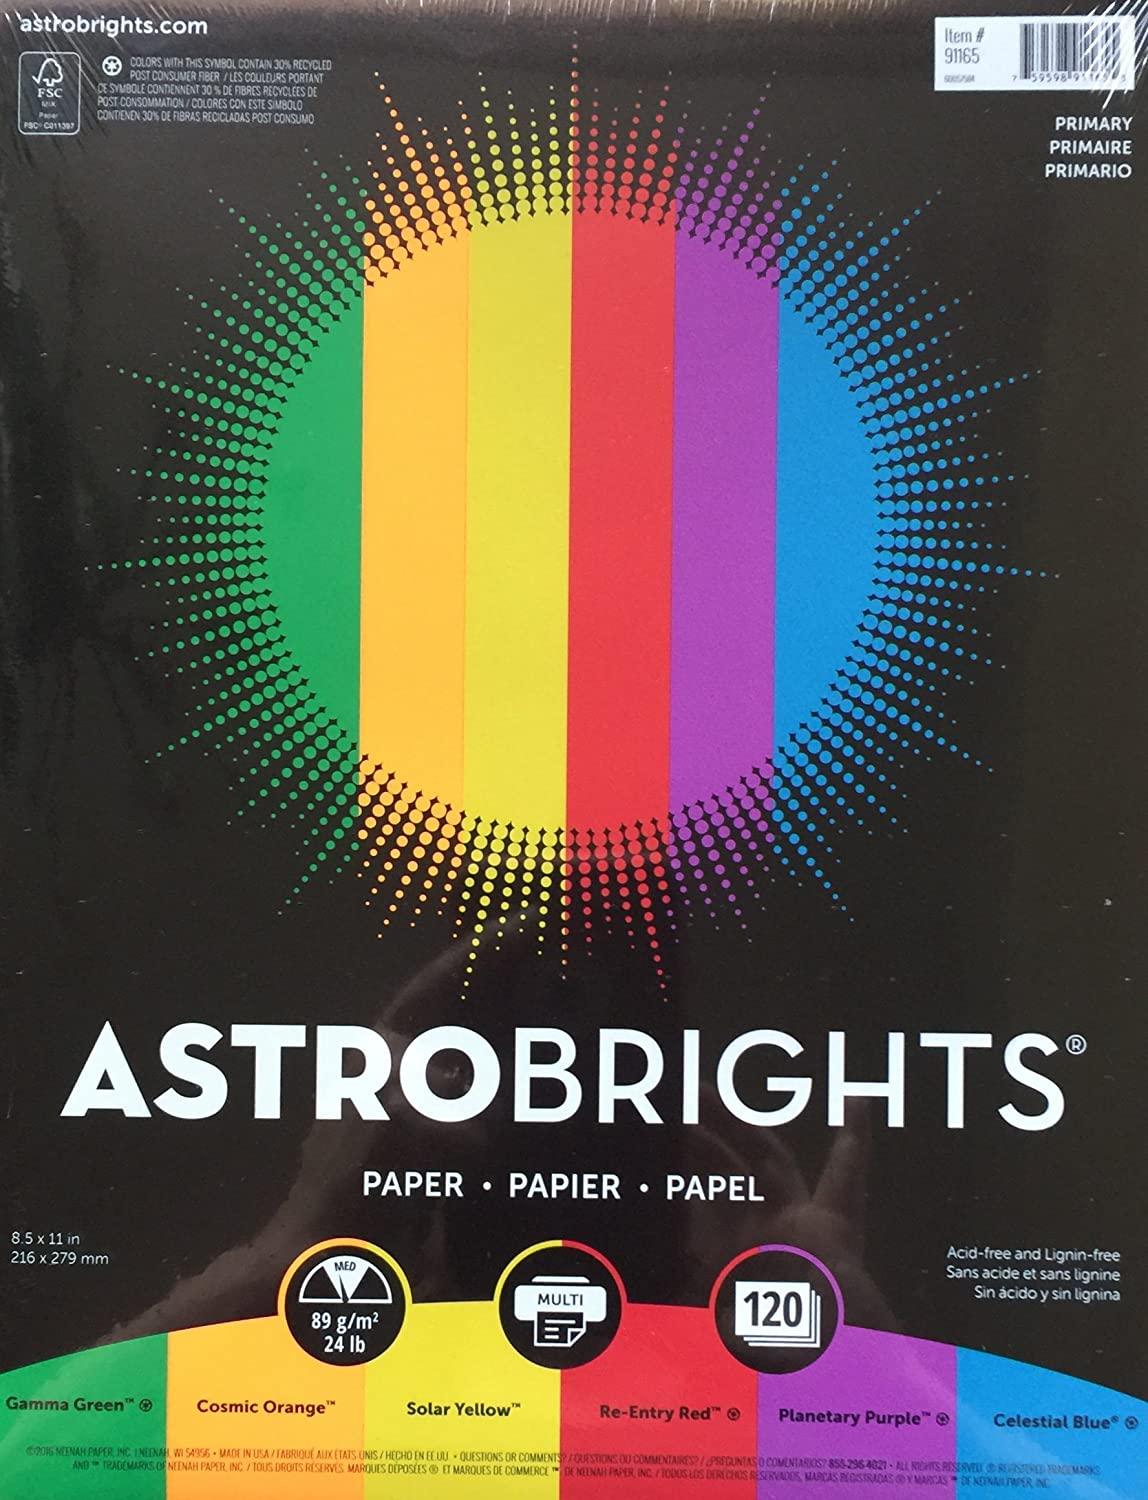 8.5x11 Astrobrights Color Paper Primary 120 Pages